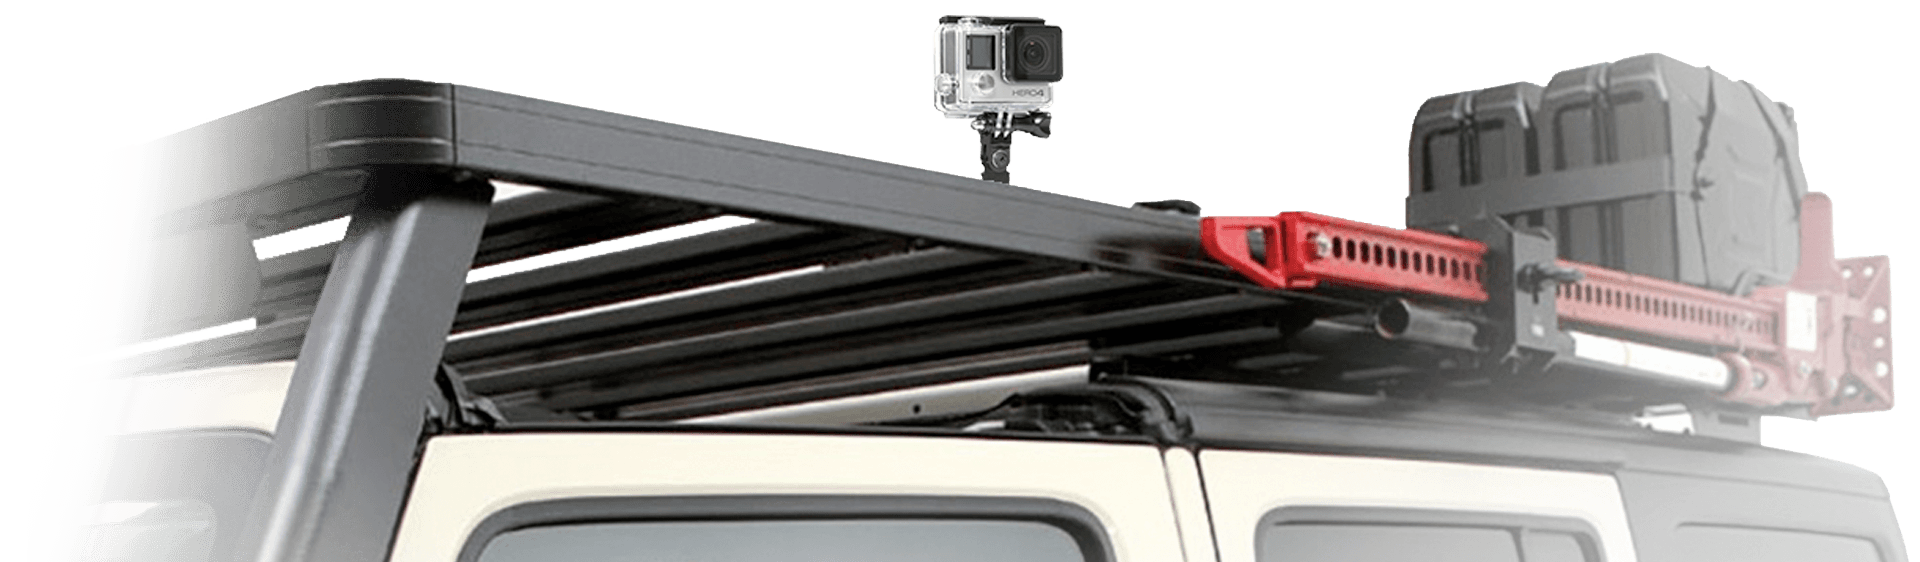 Jeep Roof Rack and Gopro Mounting Bracket by Front Runner